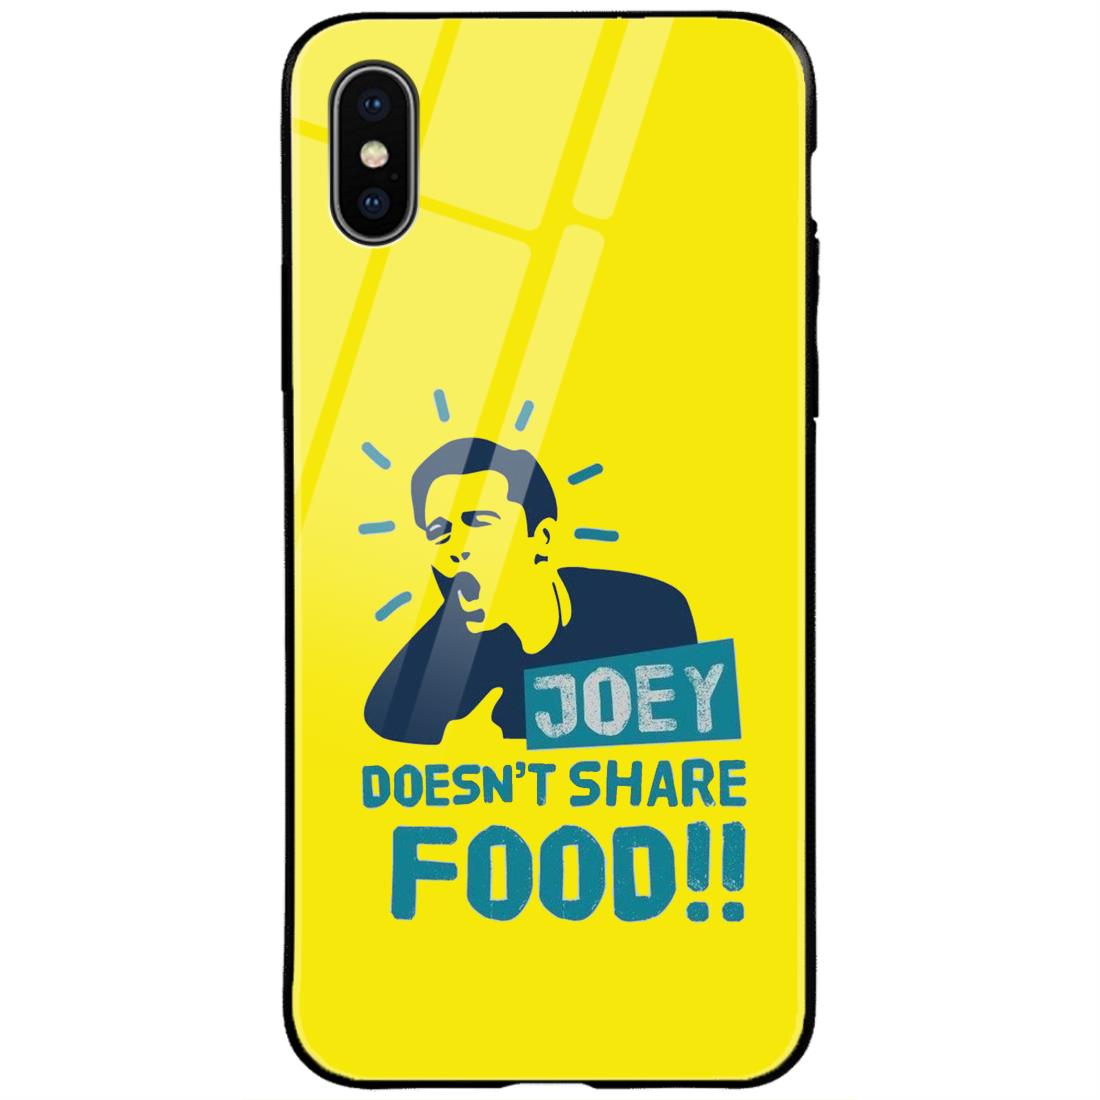 Phone Cases,Apple Phone Cases,iPhone Xs Max Glass Case,Friends